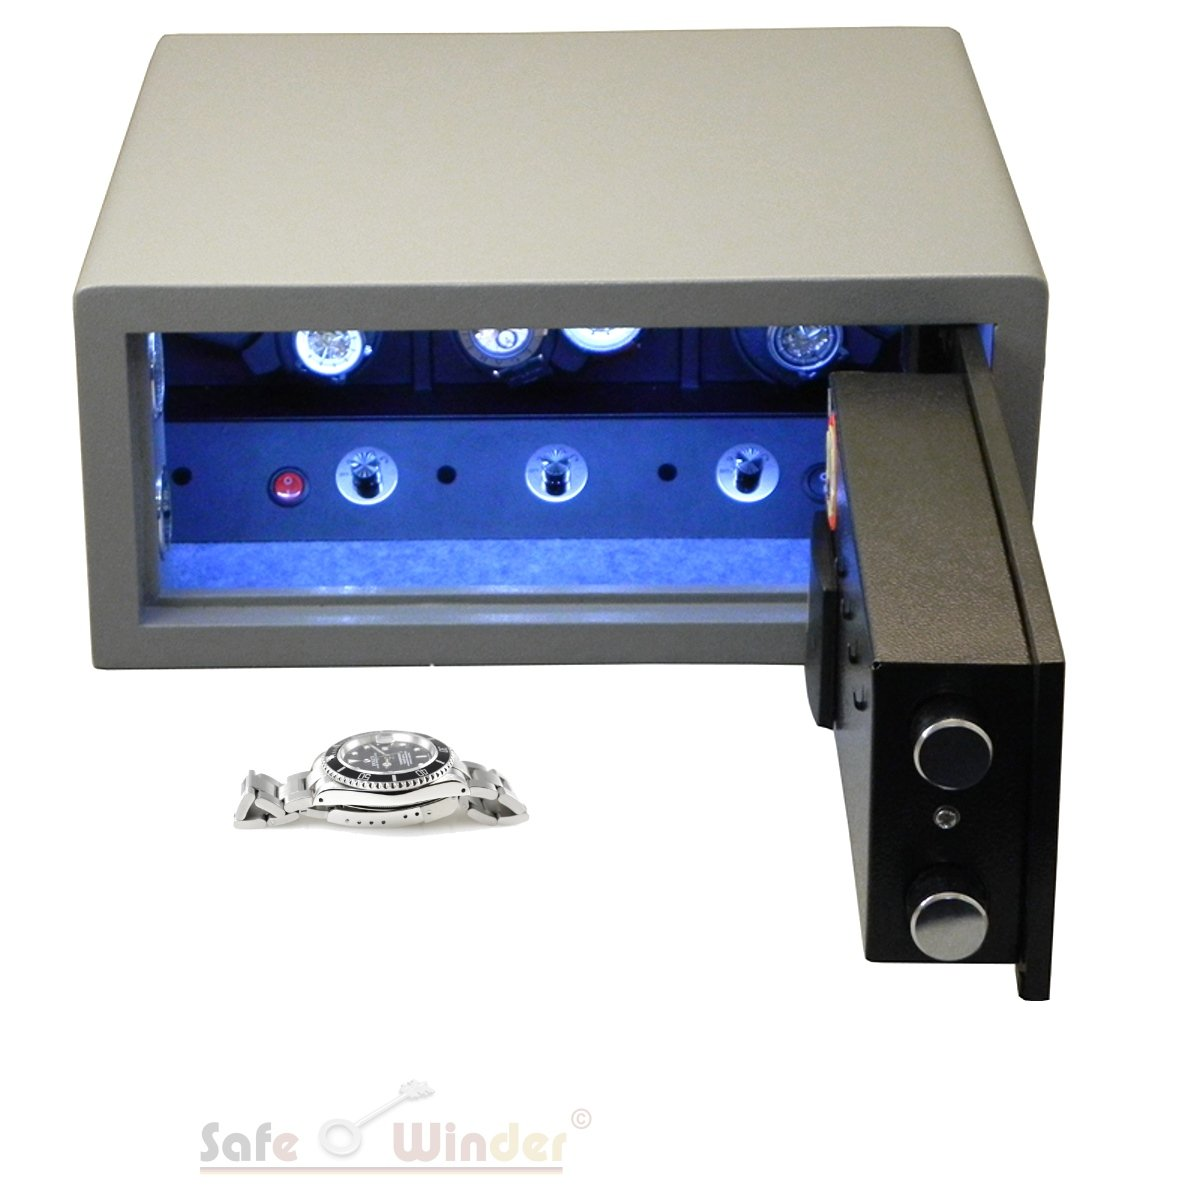 Safewinder® Type 6 S Uhrenbeweger & Safe